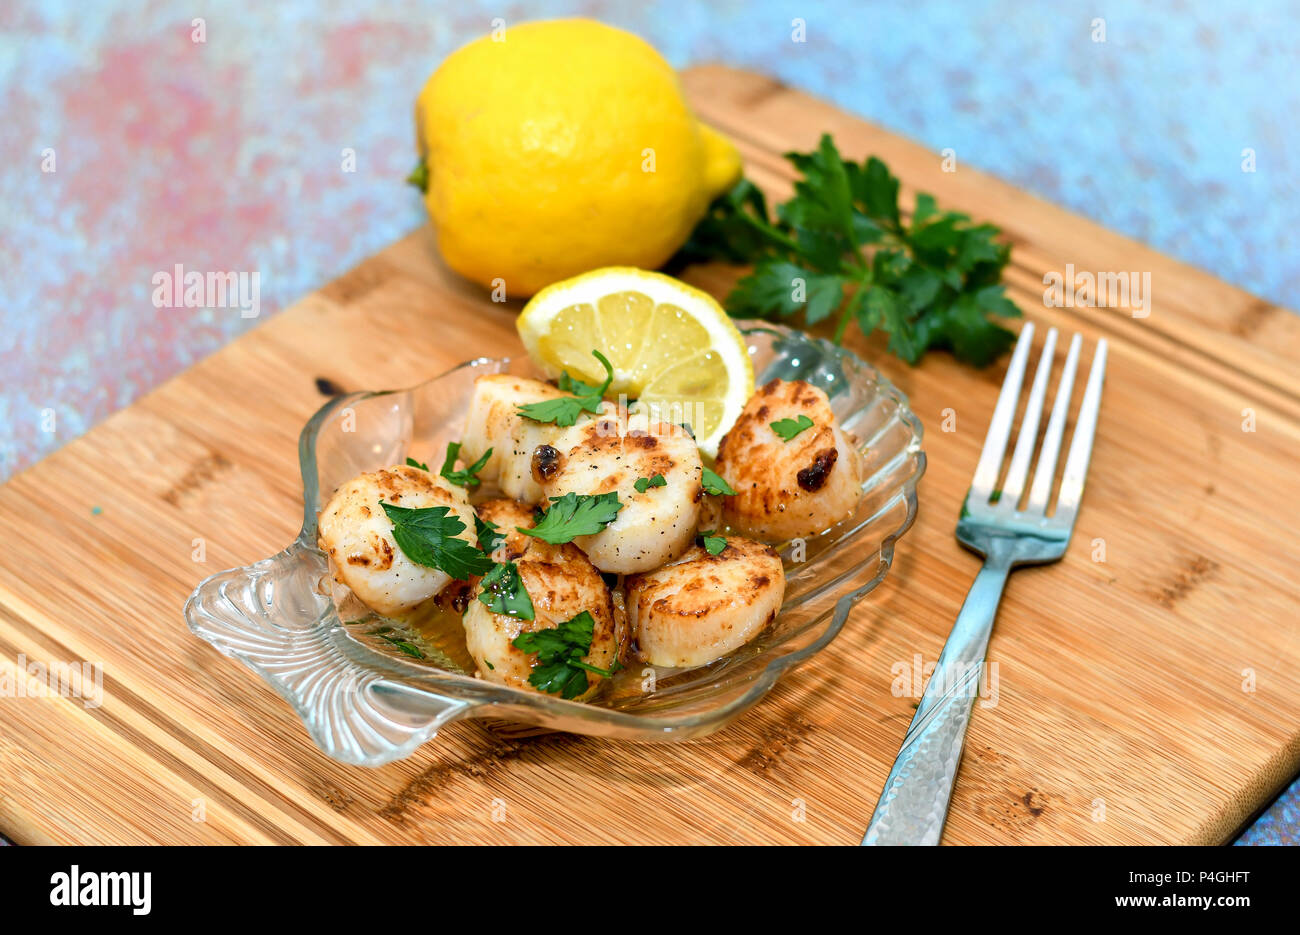 Glass plate of yummy Sea scallops with lemon butter - Stock Image